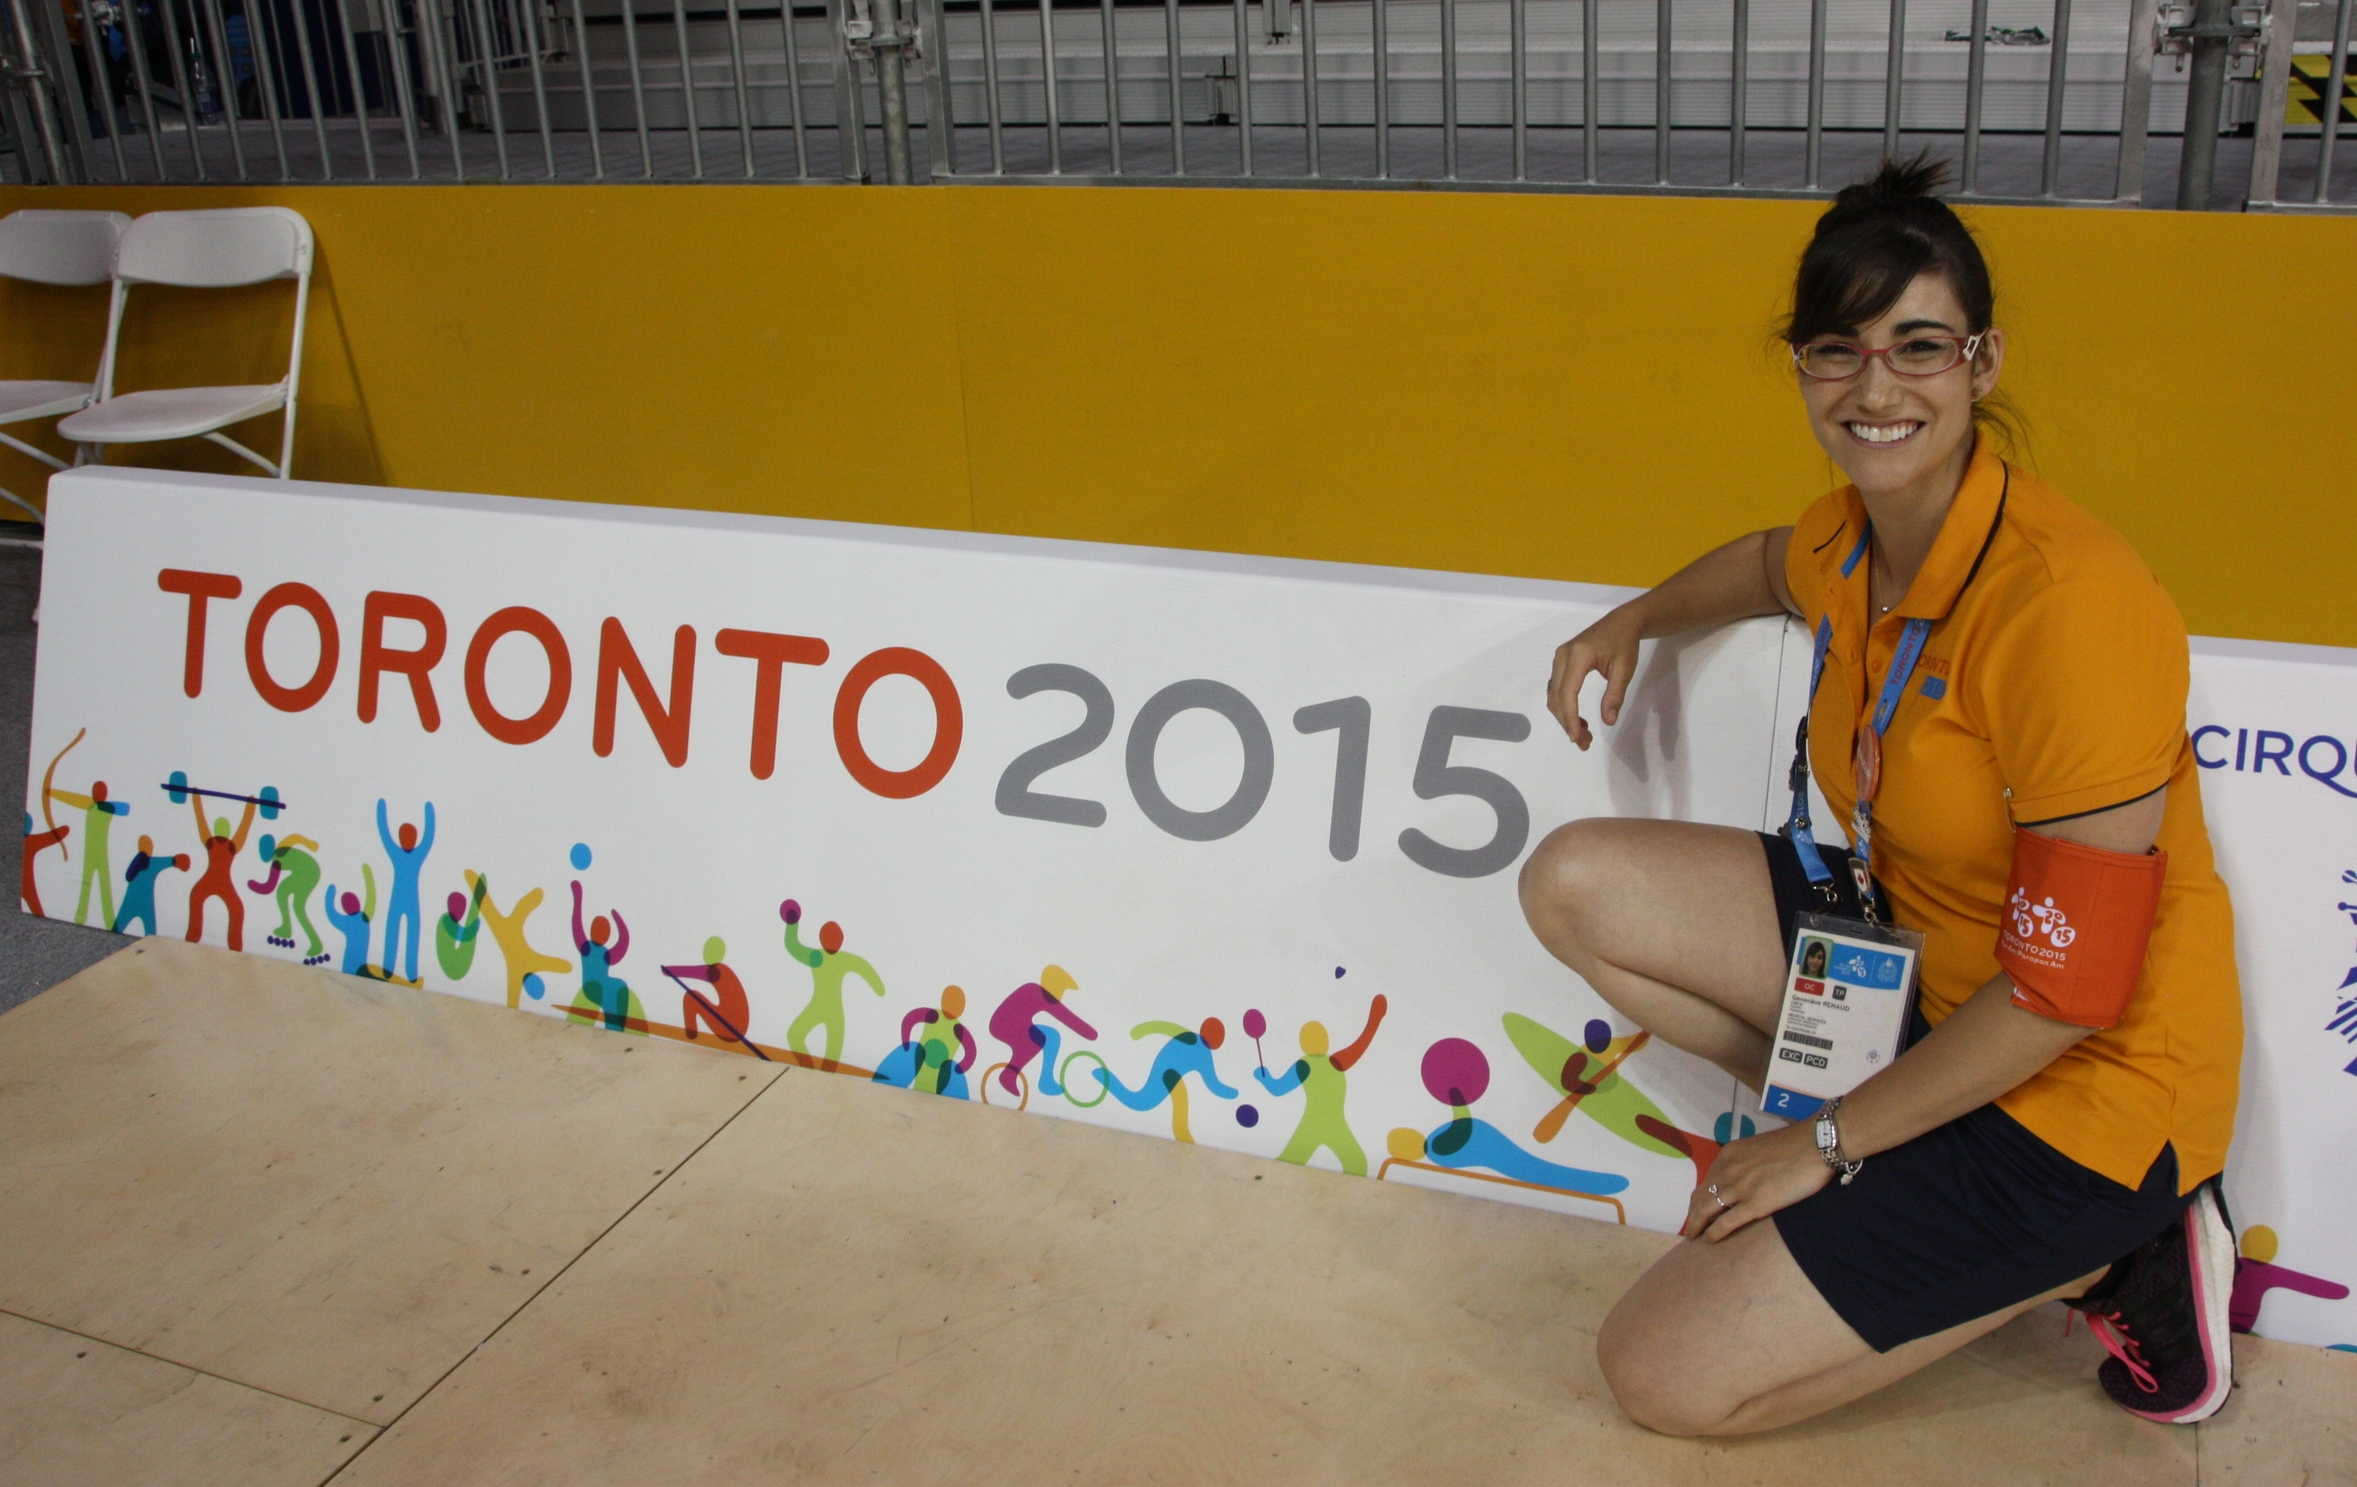 Working the Roller Figure Skating event at the 2015 PanAm Games in Toronto, ON.